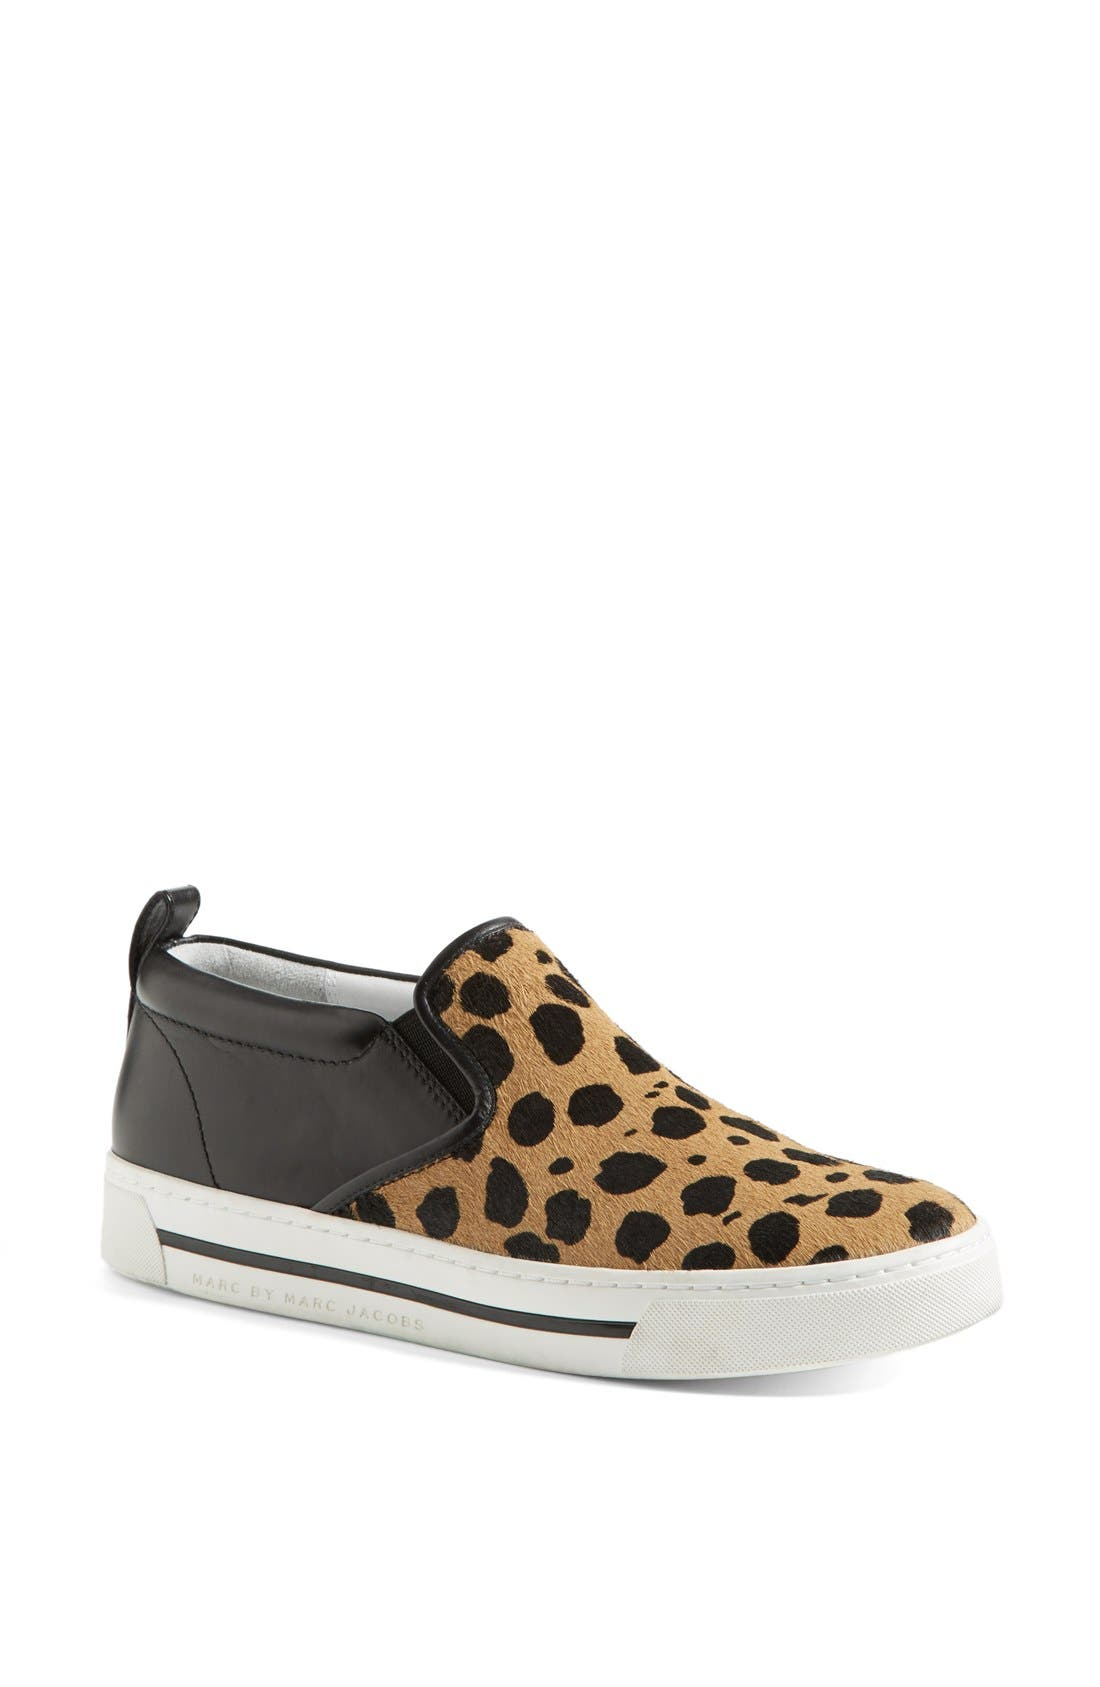 MARC BY MARC JACOBS Leather & Calf Hair Slip-On Sneaker,                             Main thumbnail 1, color,